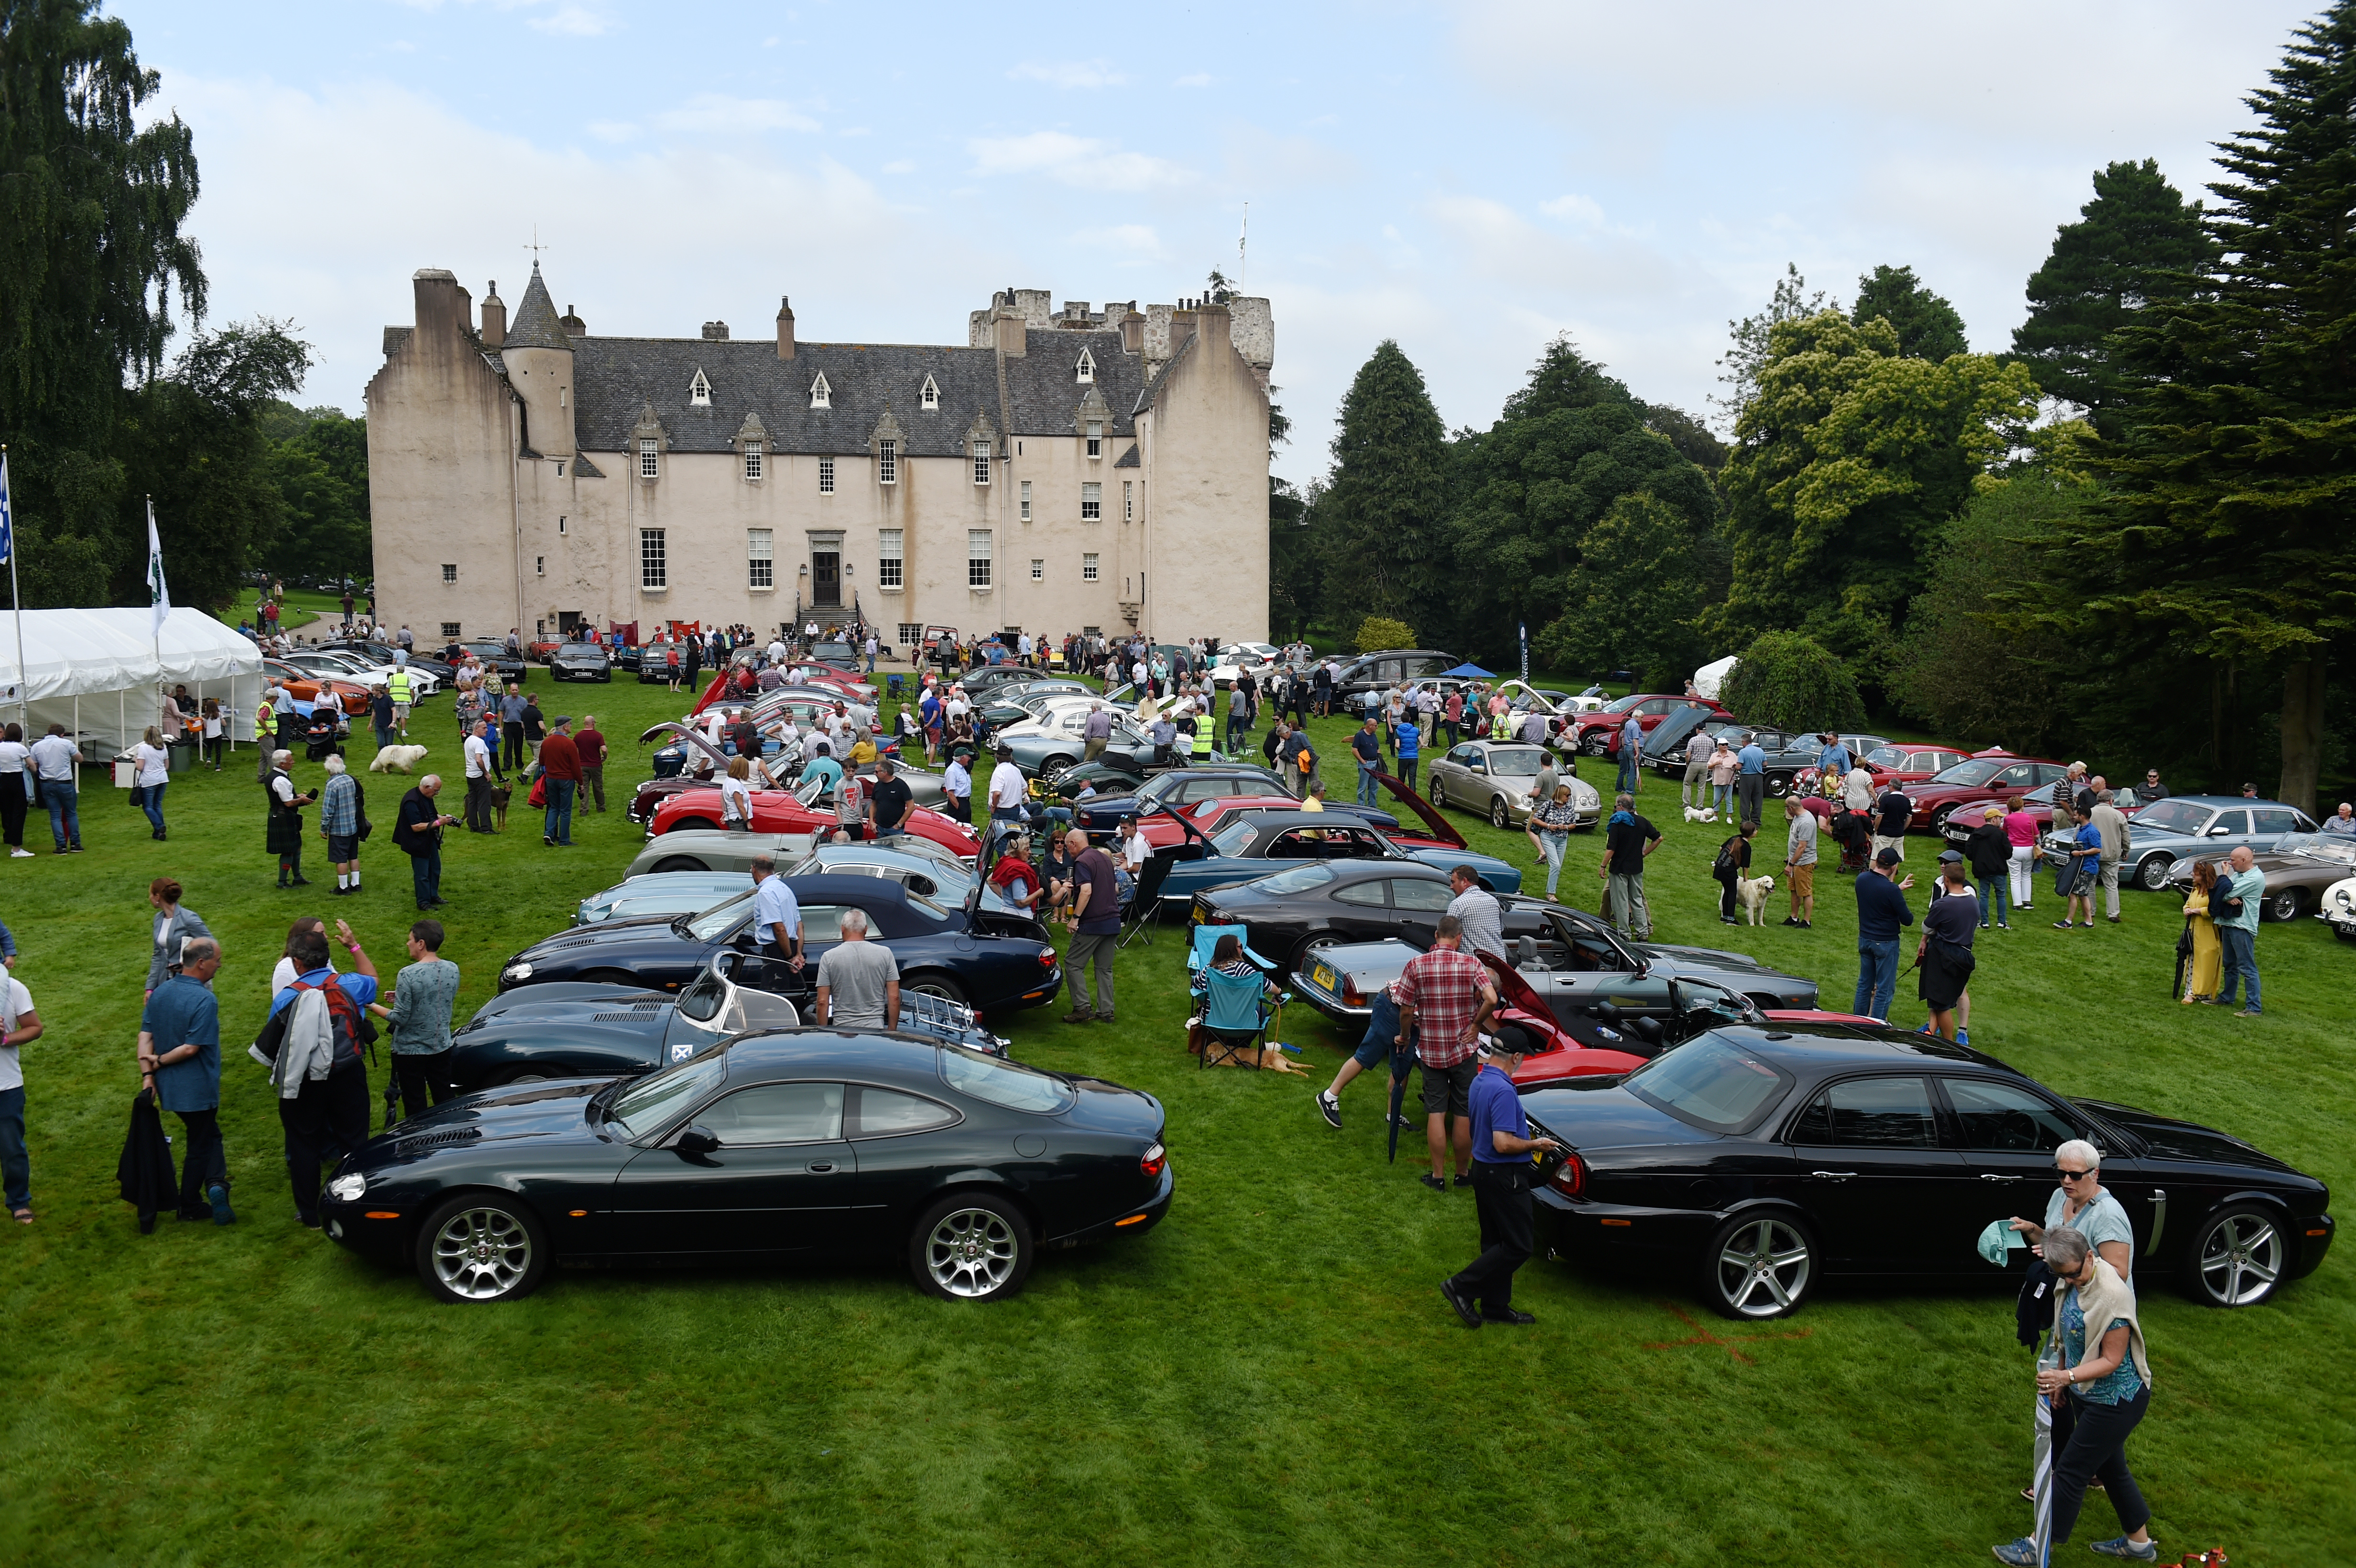 Hundreds of visitors attended